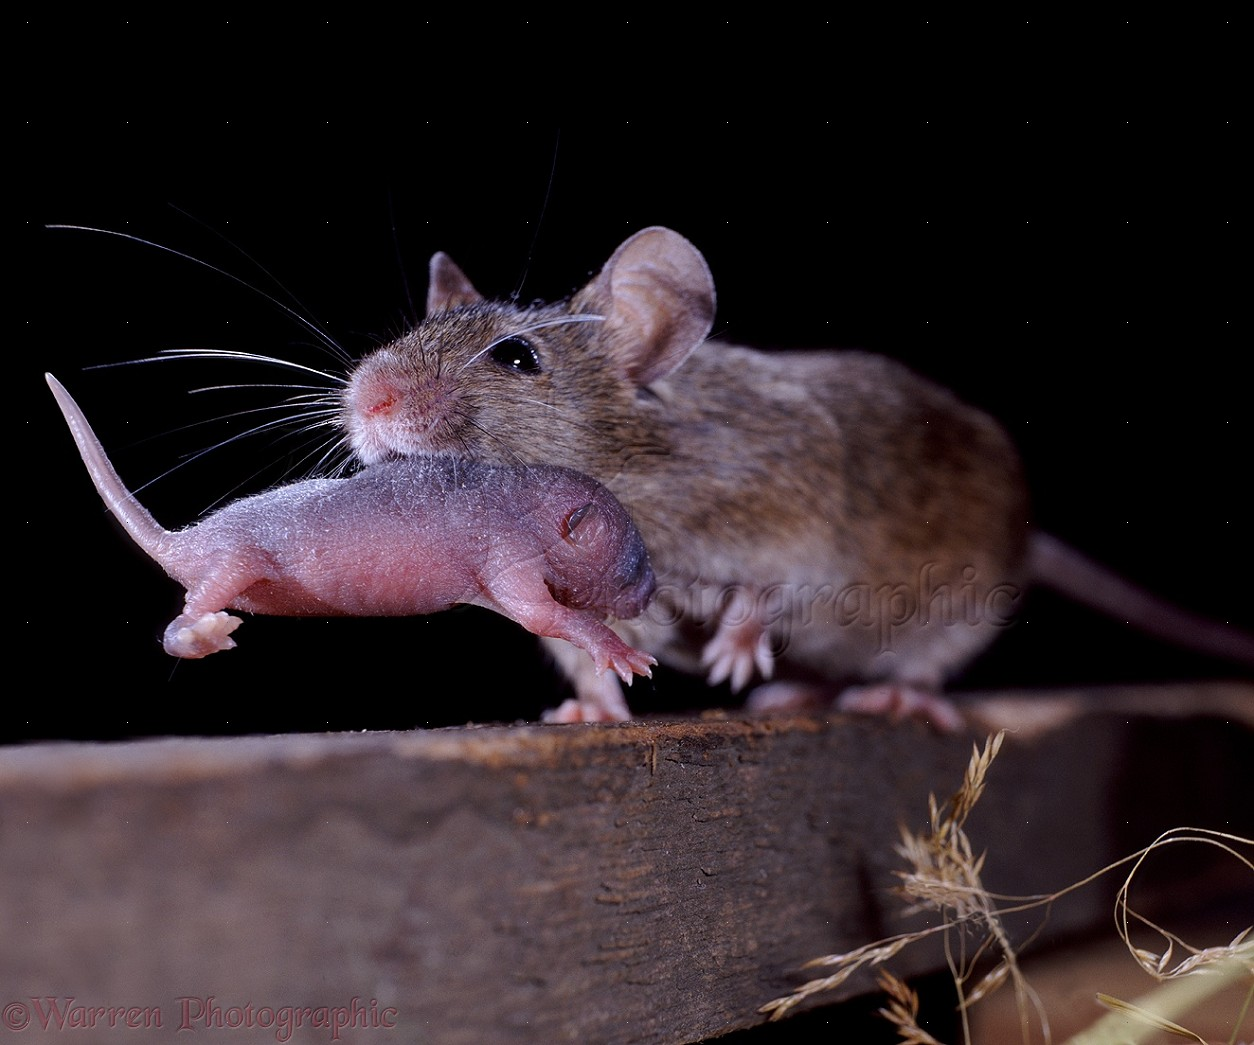 mouse carrying baby photo wp06635